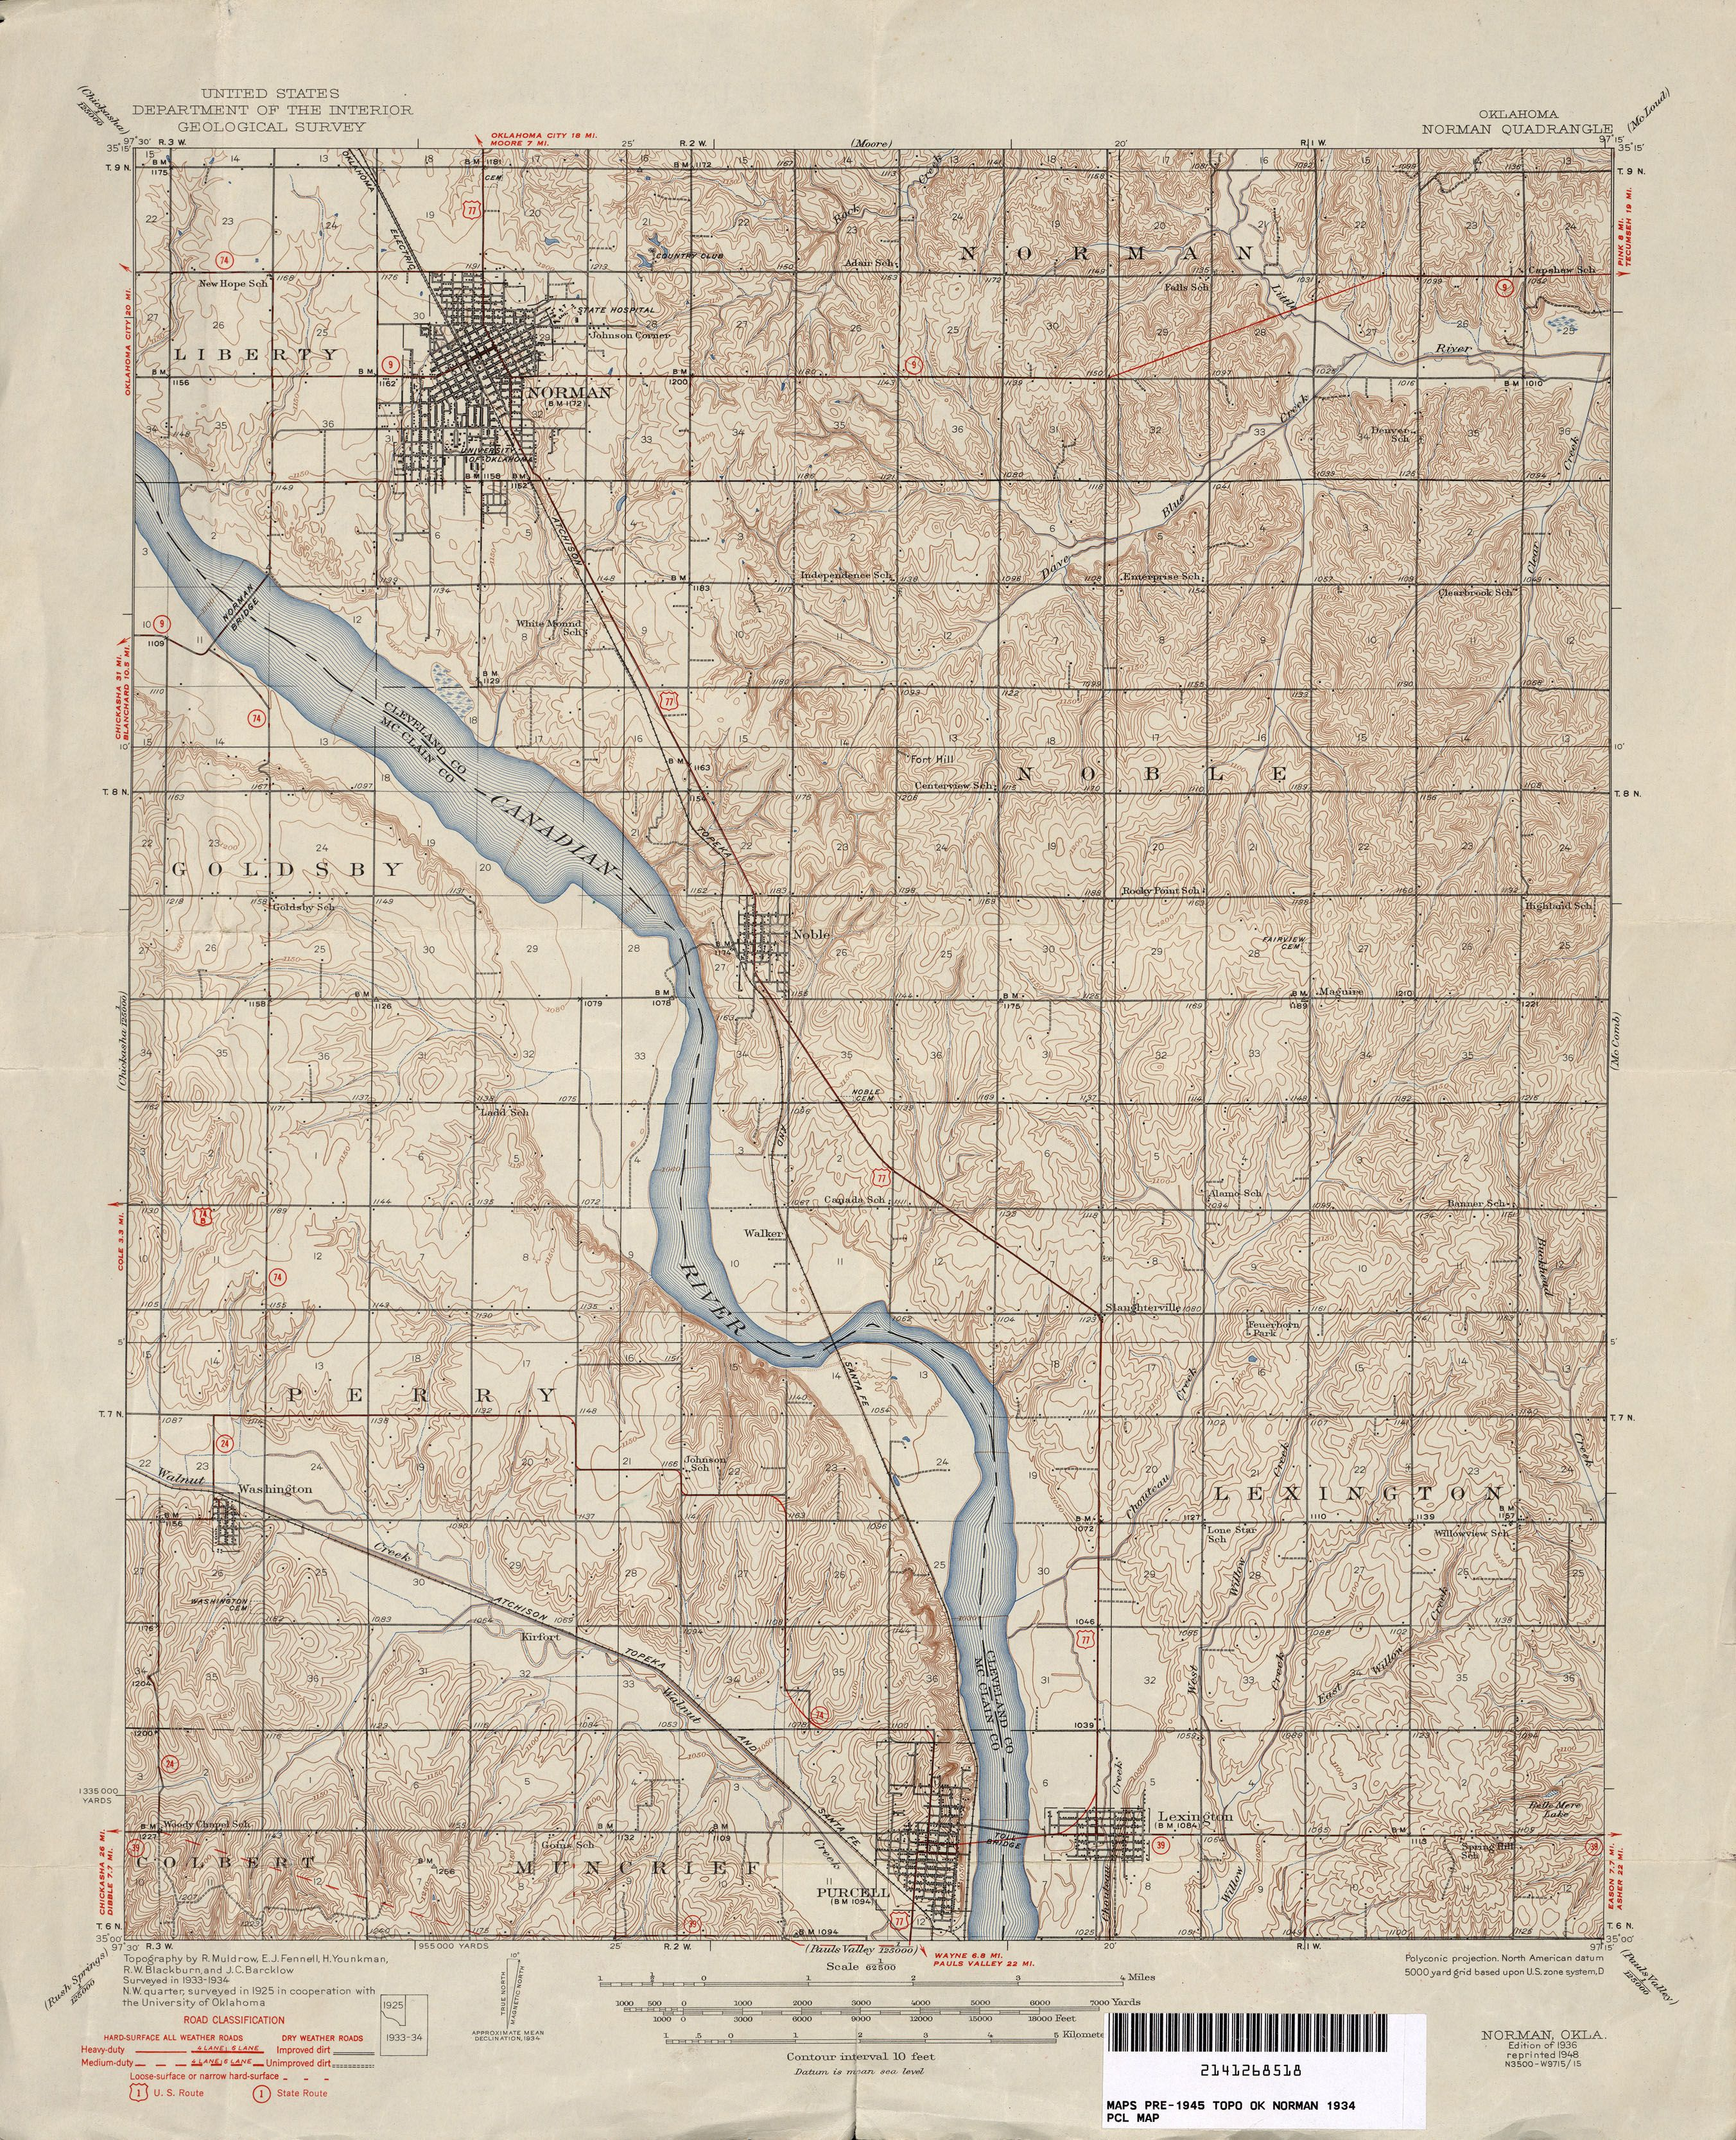 Oklahoma Historical Topographic Maps | Mappy | Pinterest ...